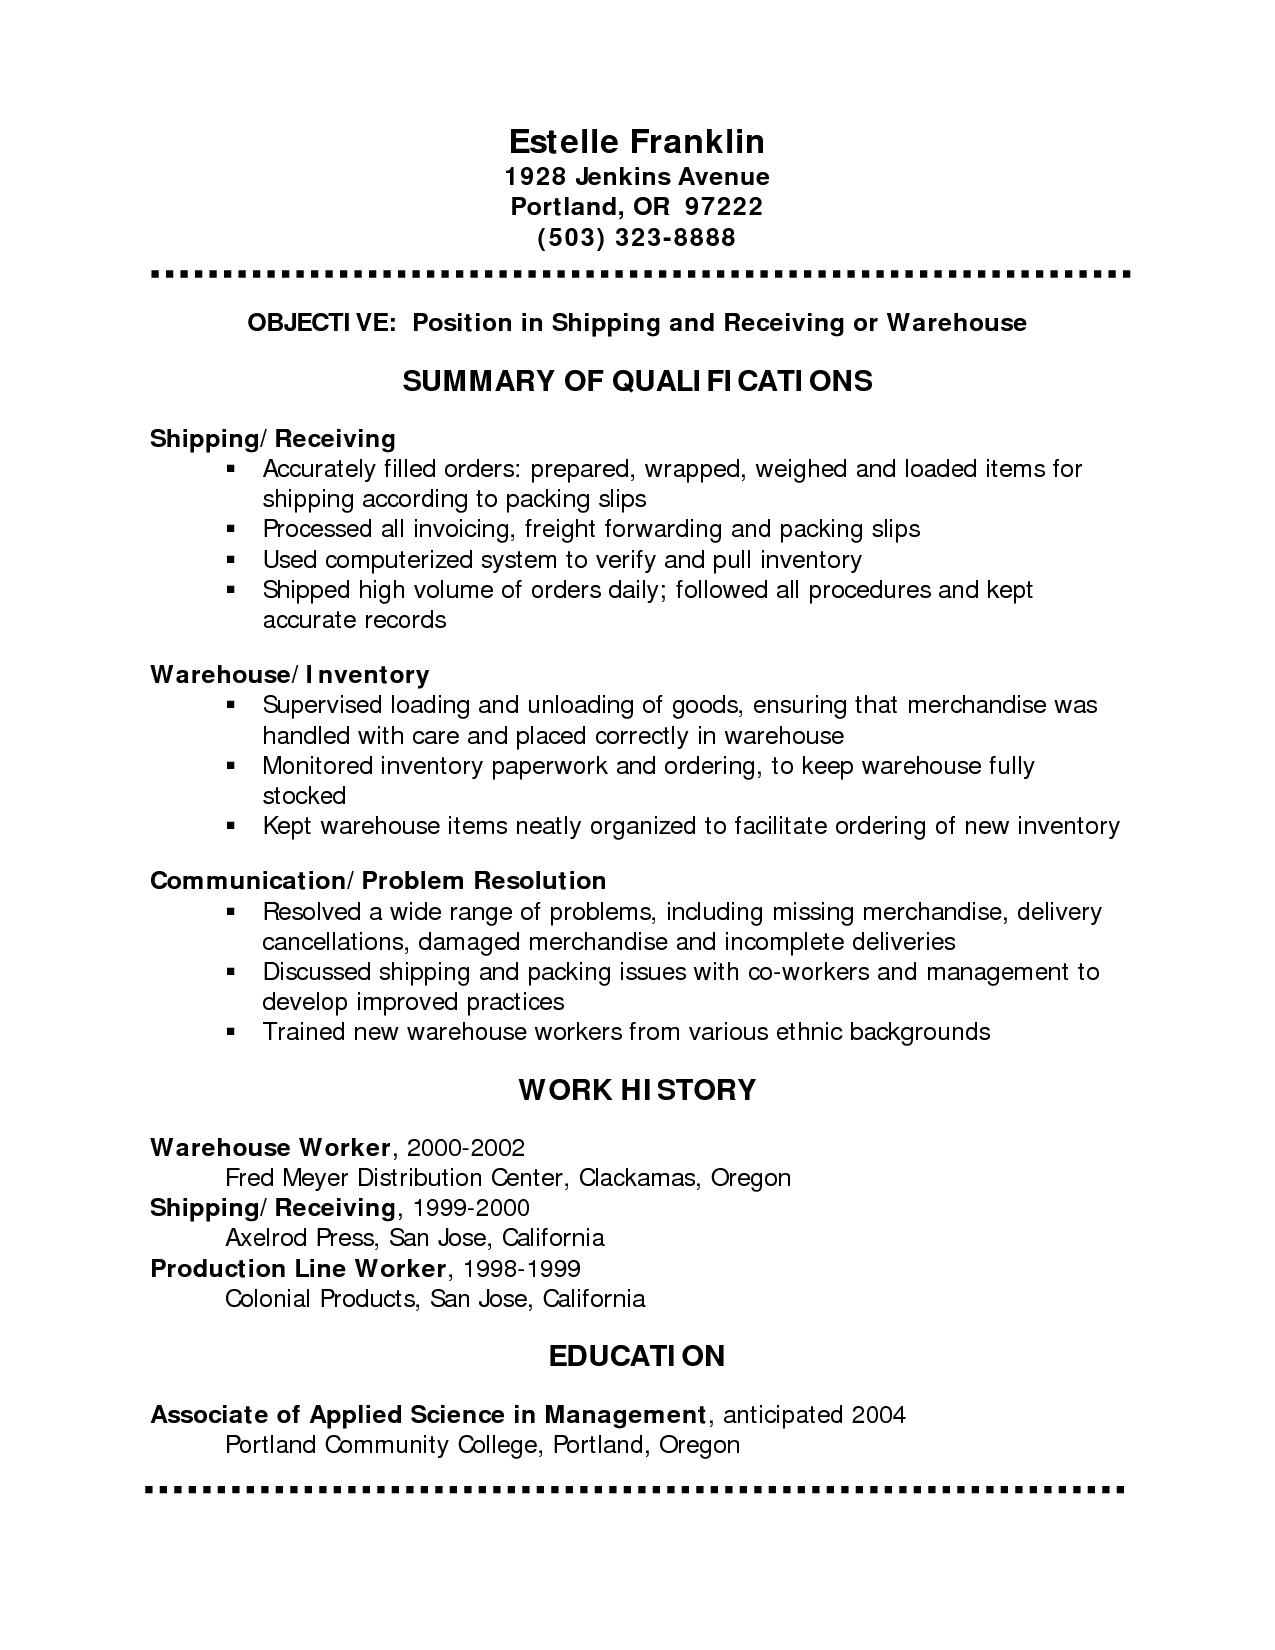 resume examples free professional templates best template downloadable - Professional Resume Samples Free